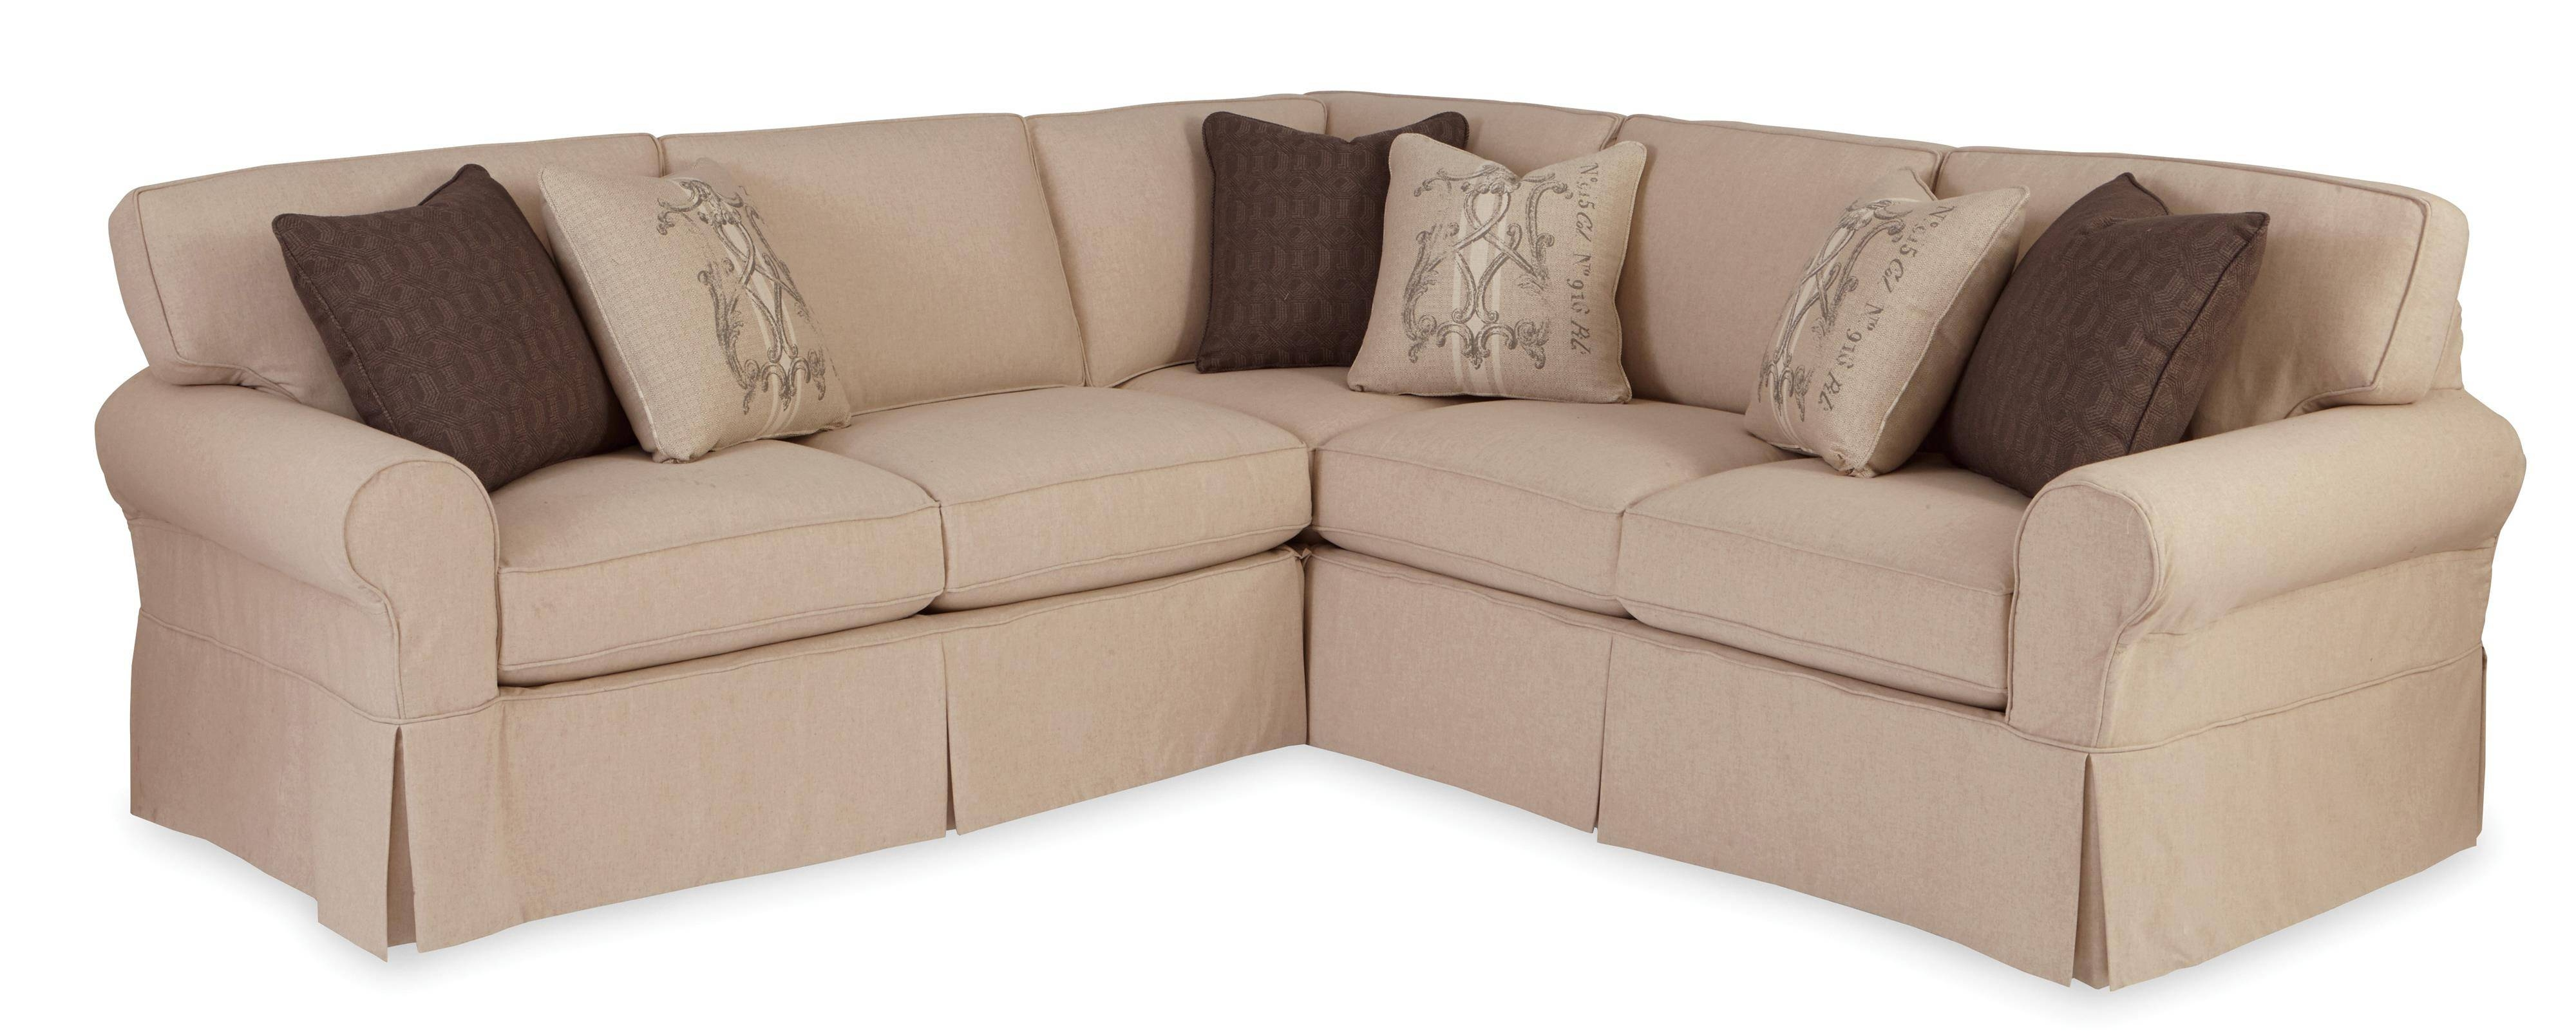 Furniture: Couch Covers At Walmart To Make Your Furniture Stylish within Sectional Sofa Covers (Image 5 of 25)